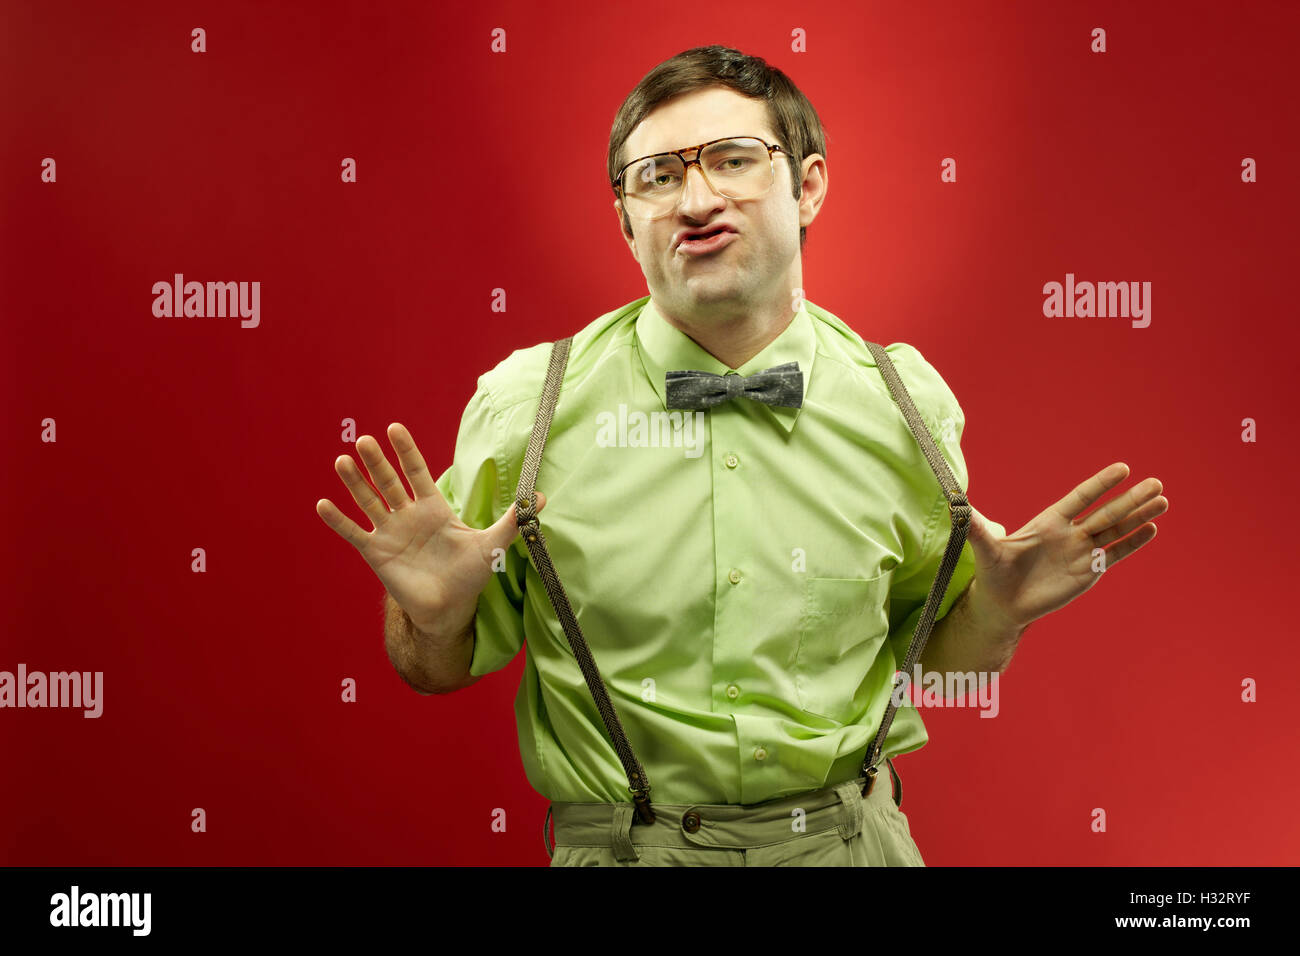 Nerd showing off - Stock Image